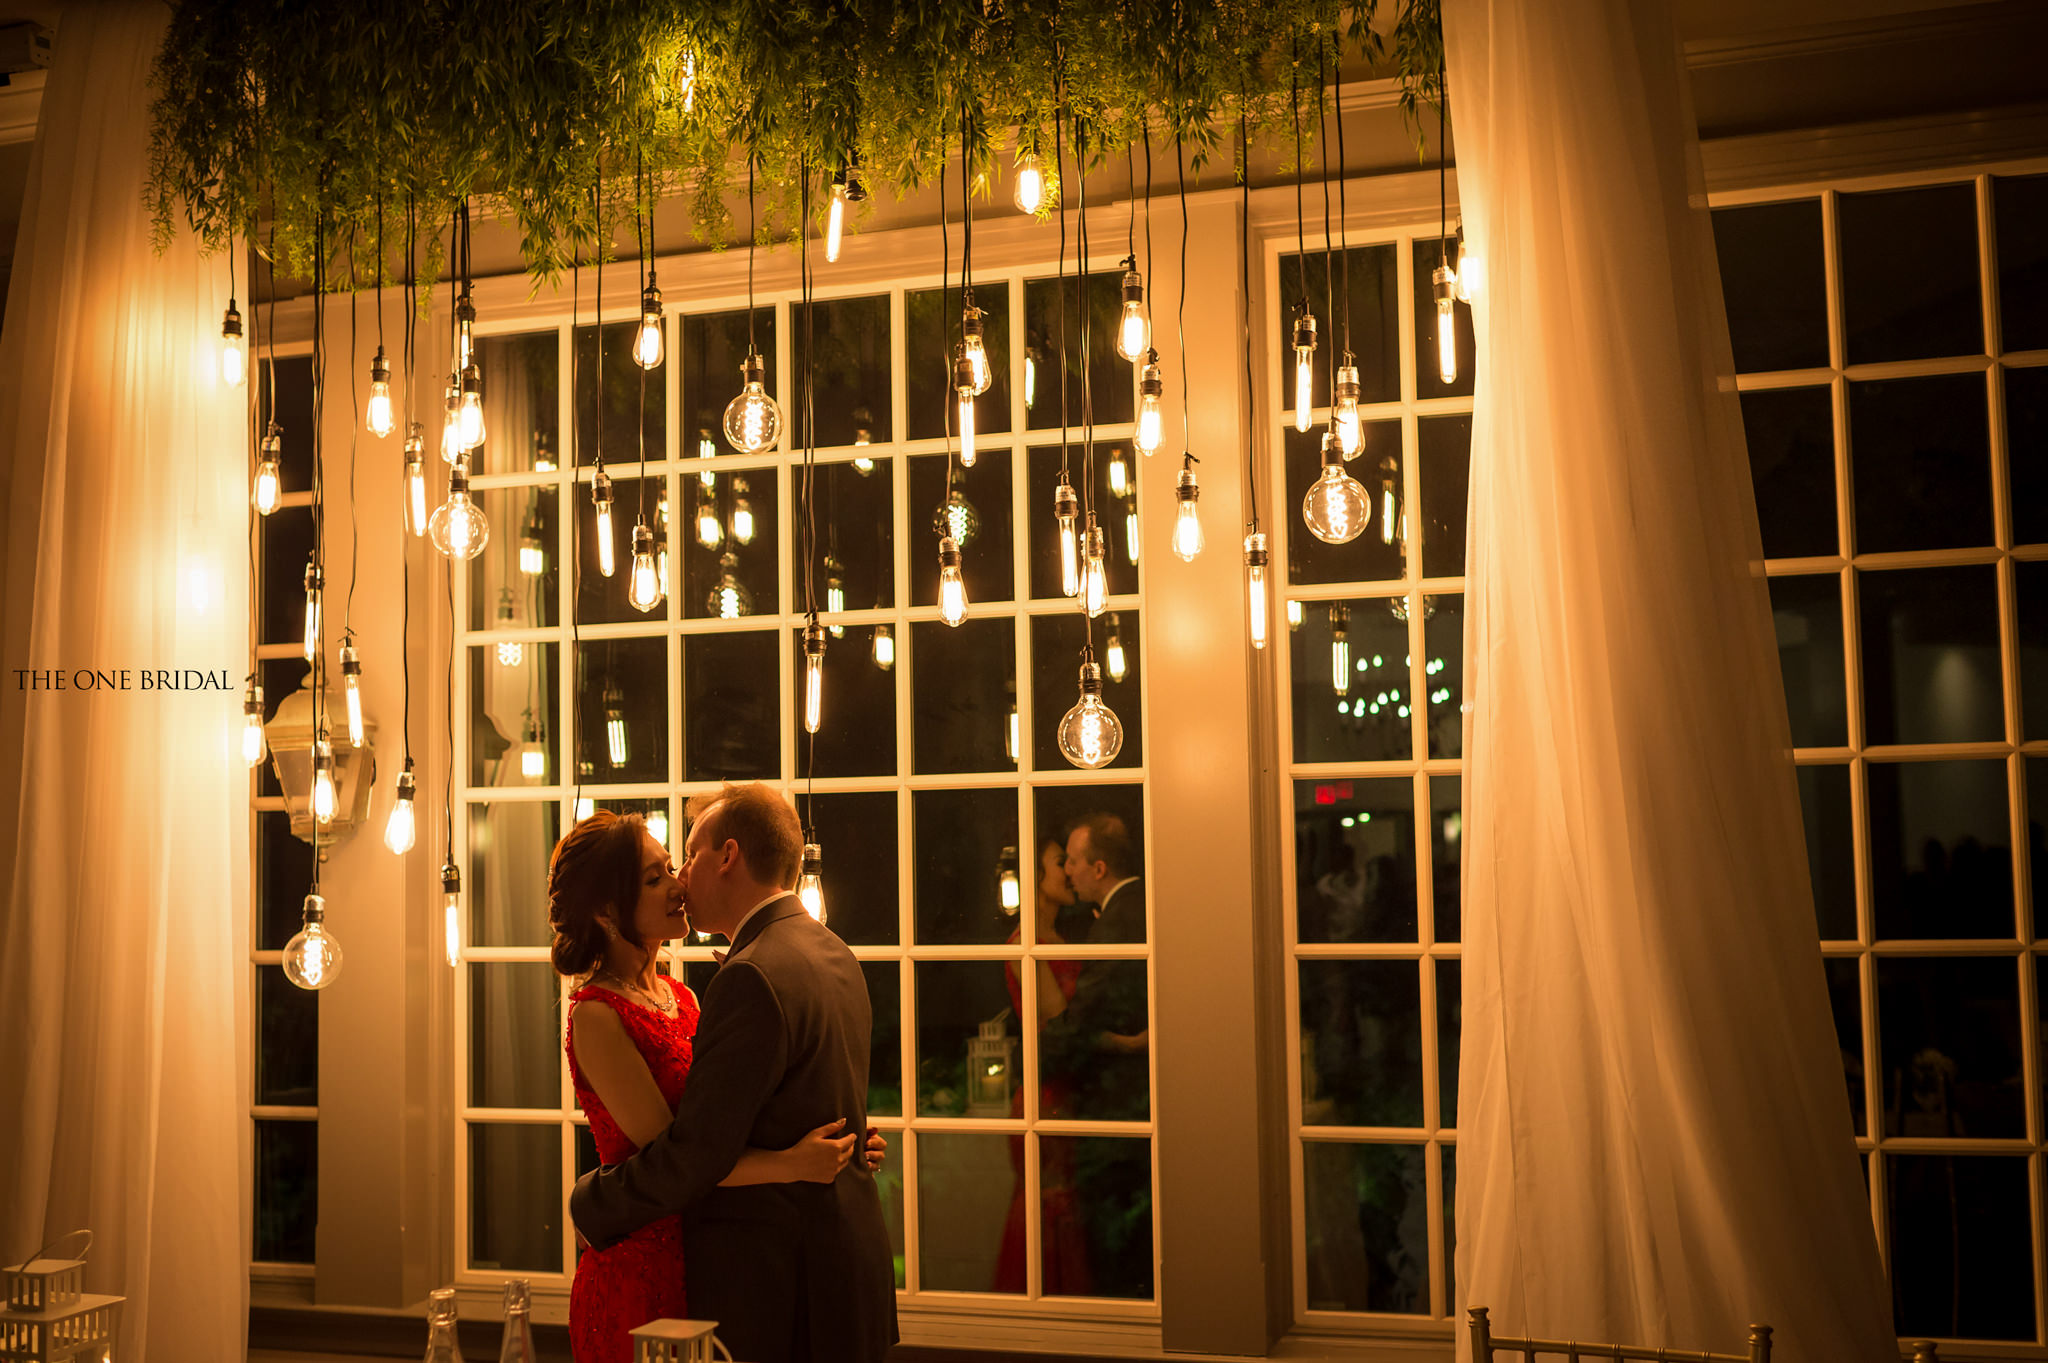 Wedding Retro Lights Backdrop